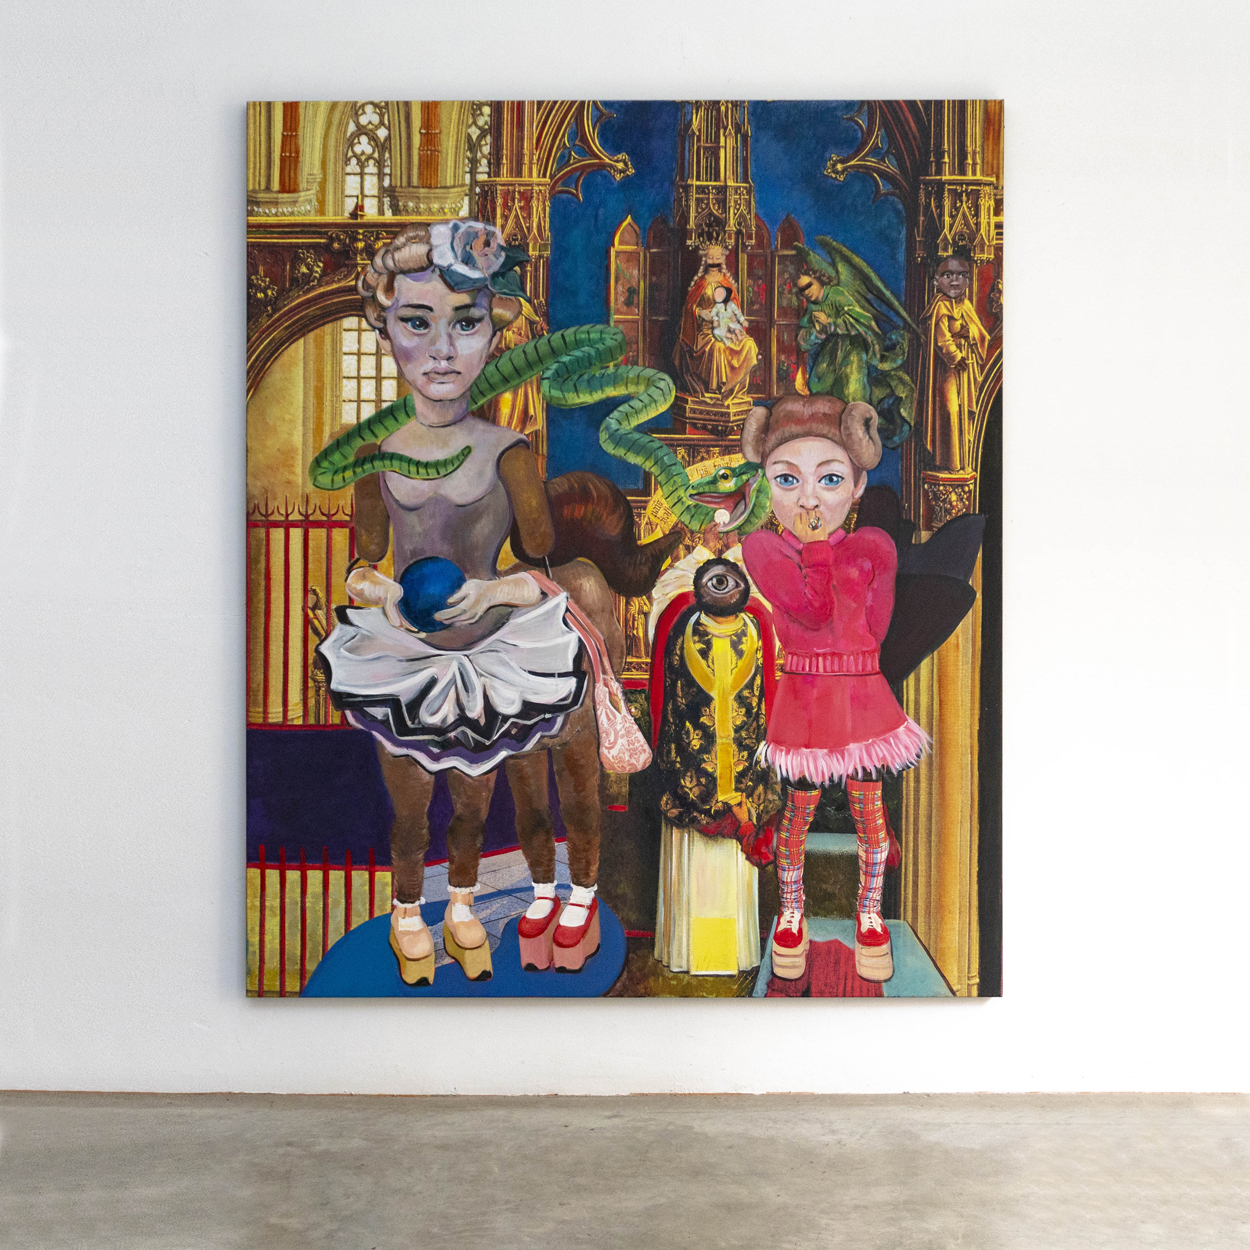 SLANGEN - Cosplay#9,180x150cm,acryl on collage print on canvas,2019_VIERKANT